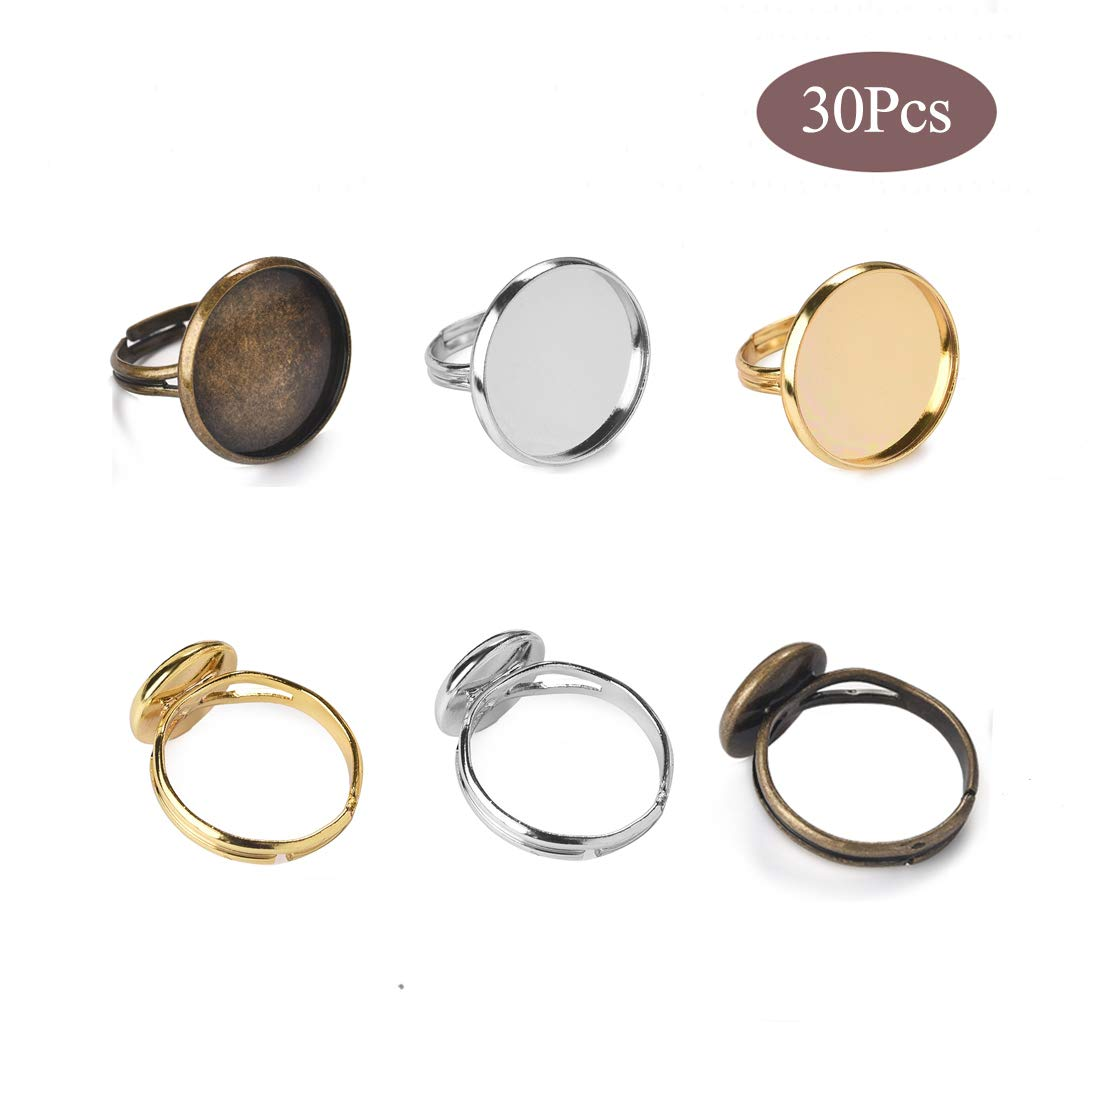 as described Bronze 10 Piece Adjustable Ring Base Blanks Cabochons Oval Shape Bezel Settings Tray Jewelry Making Findings Accessories